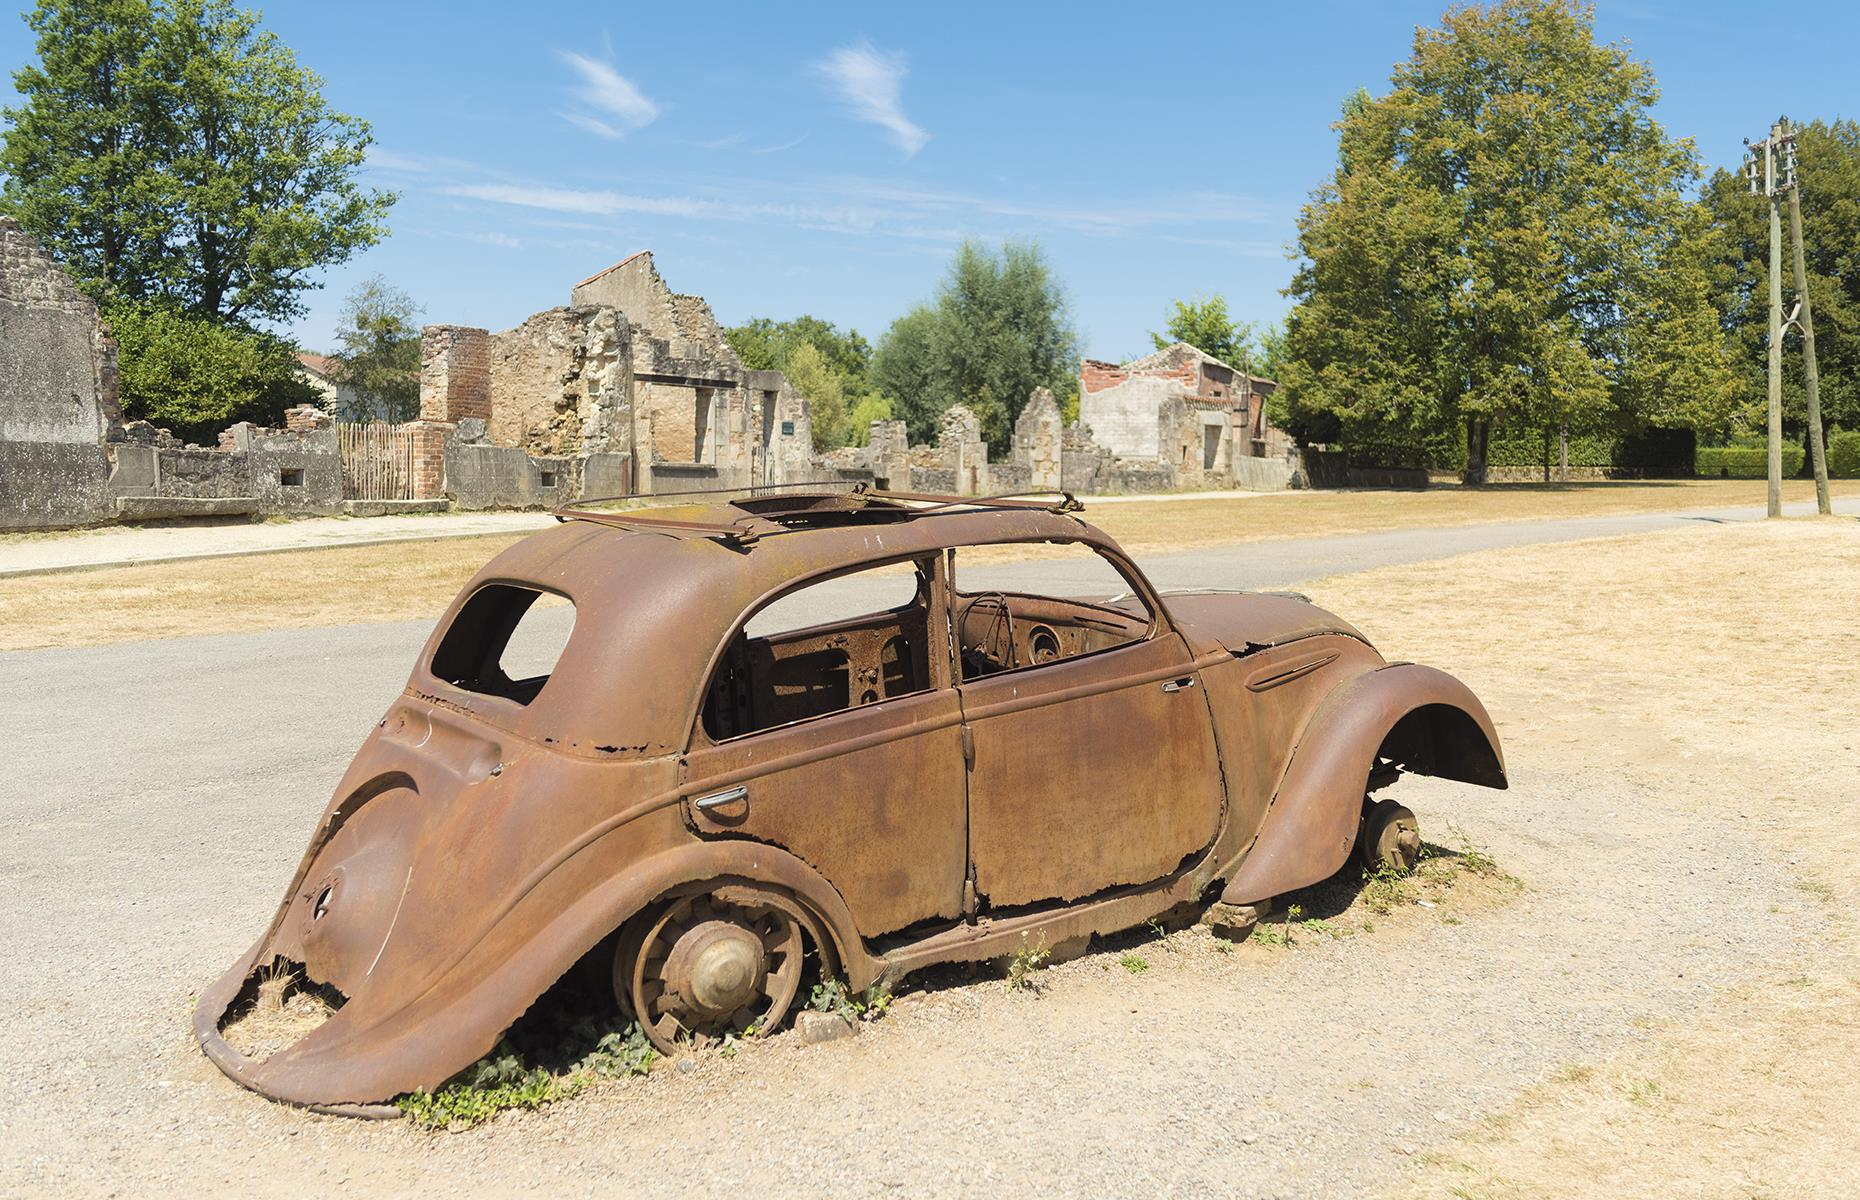 Slide 45 of 68: Today, Oradour-sur-Glane is a memorial to those who perished. Rusted cars, including the Peugeot 202 the mayor drove before his brutal death, still sit on the roads, while sewing machines, pitchers and pans still lie scattered where they were on that fateful day.